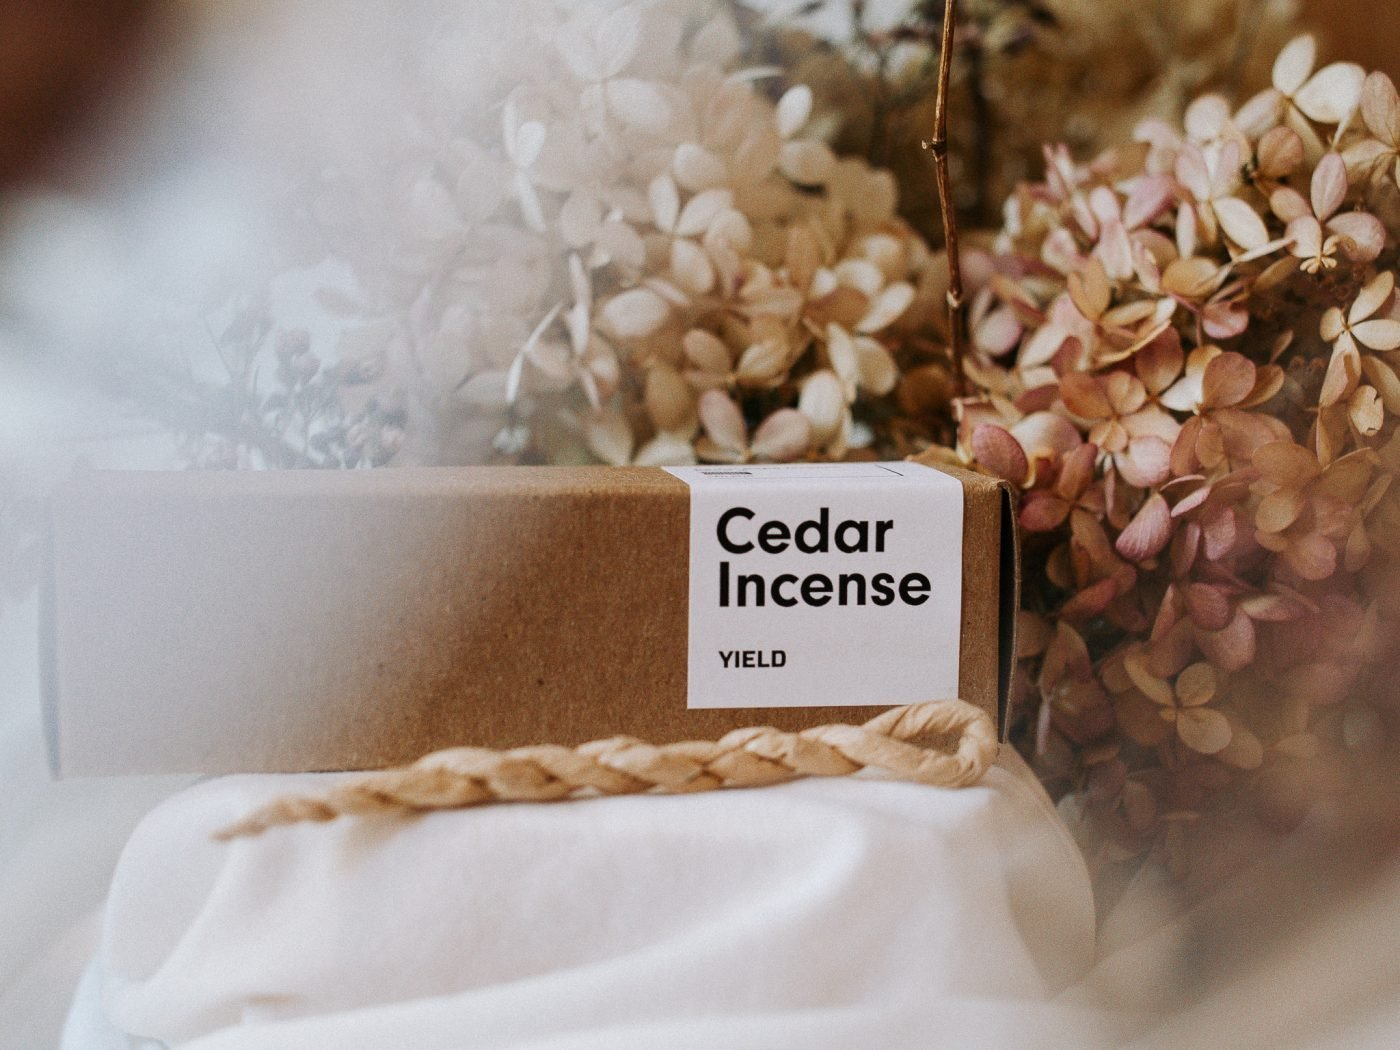 cedar incense ropes by YIELD